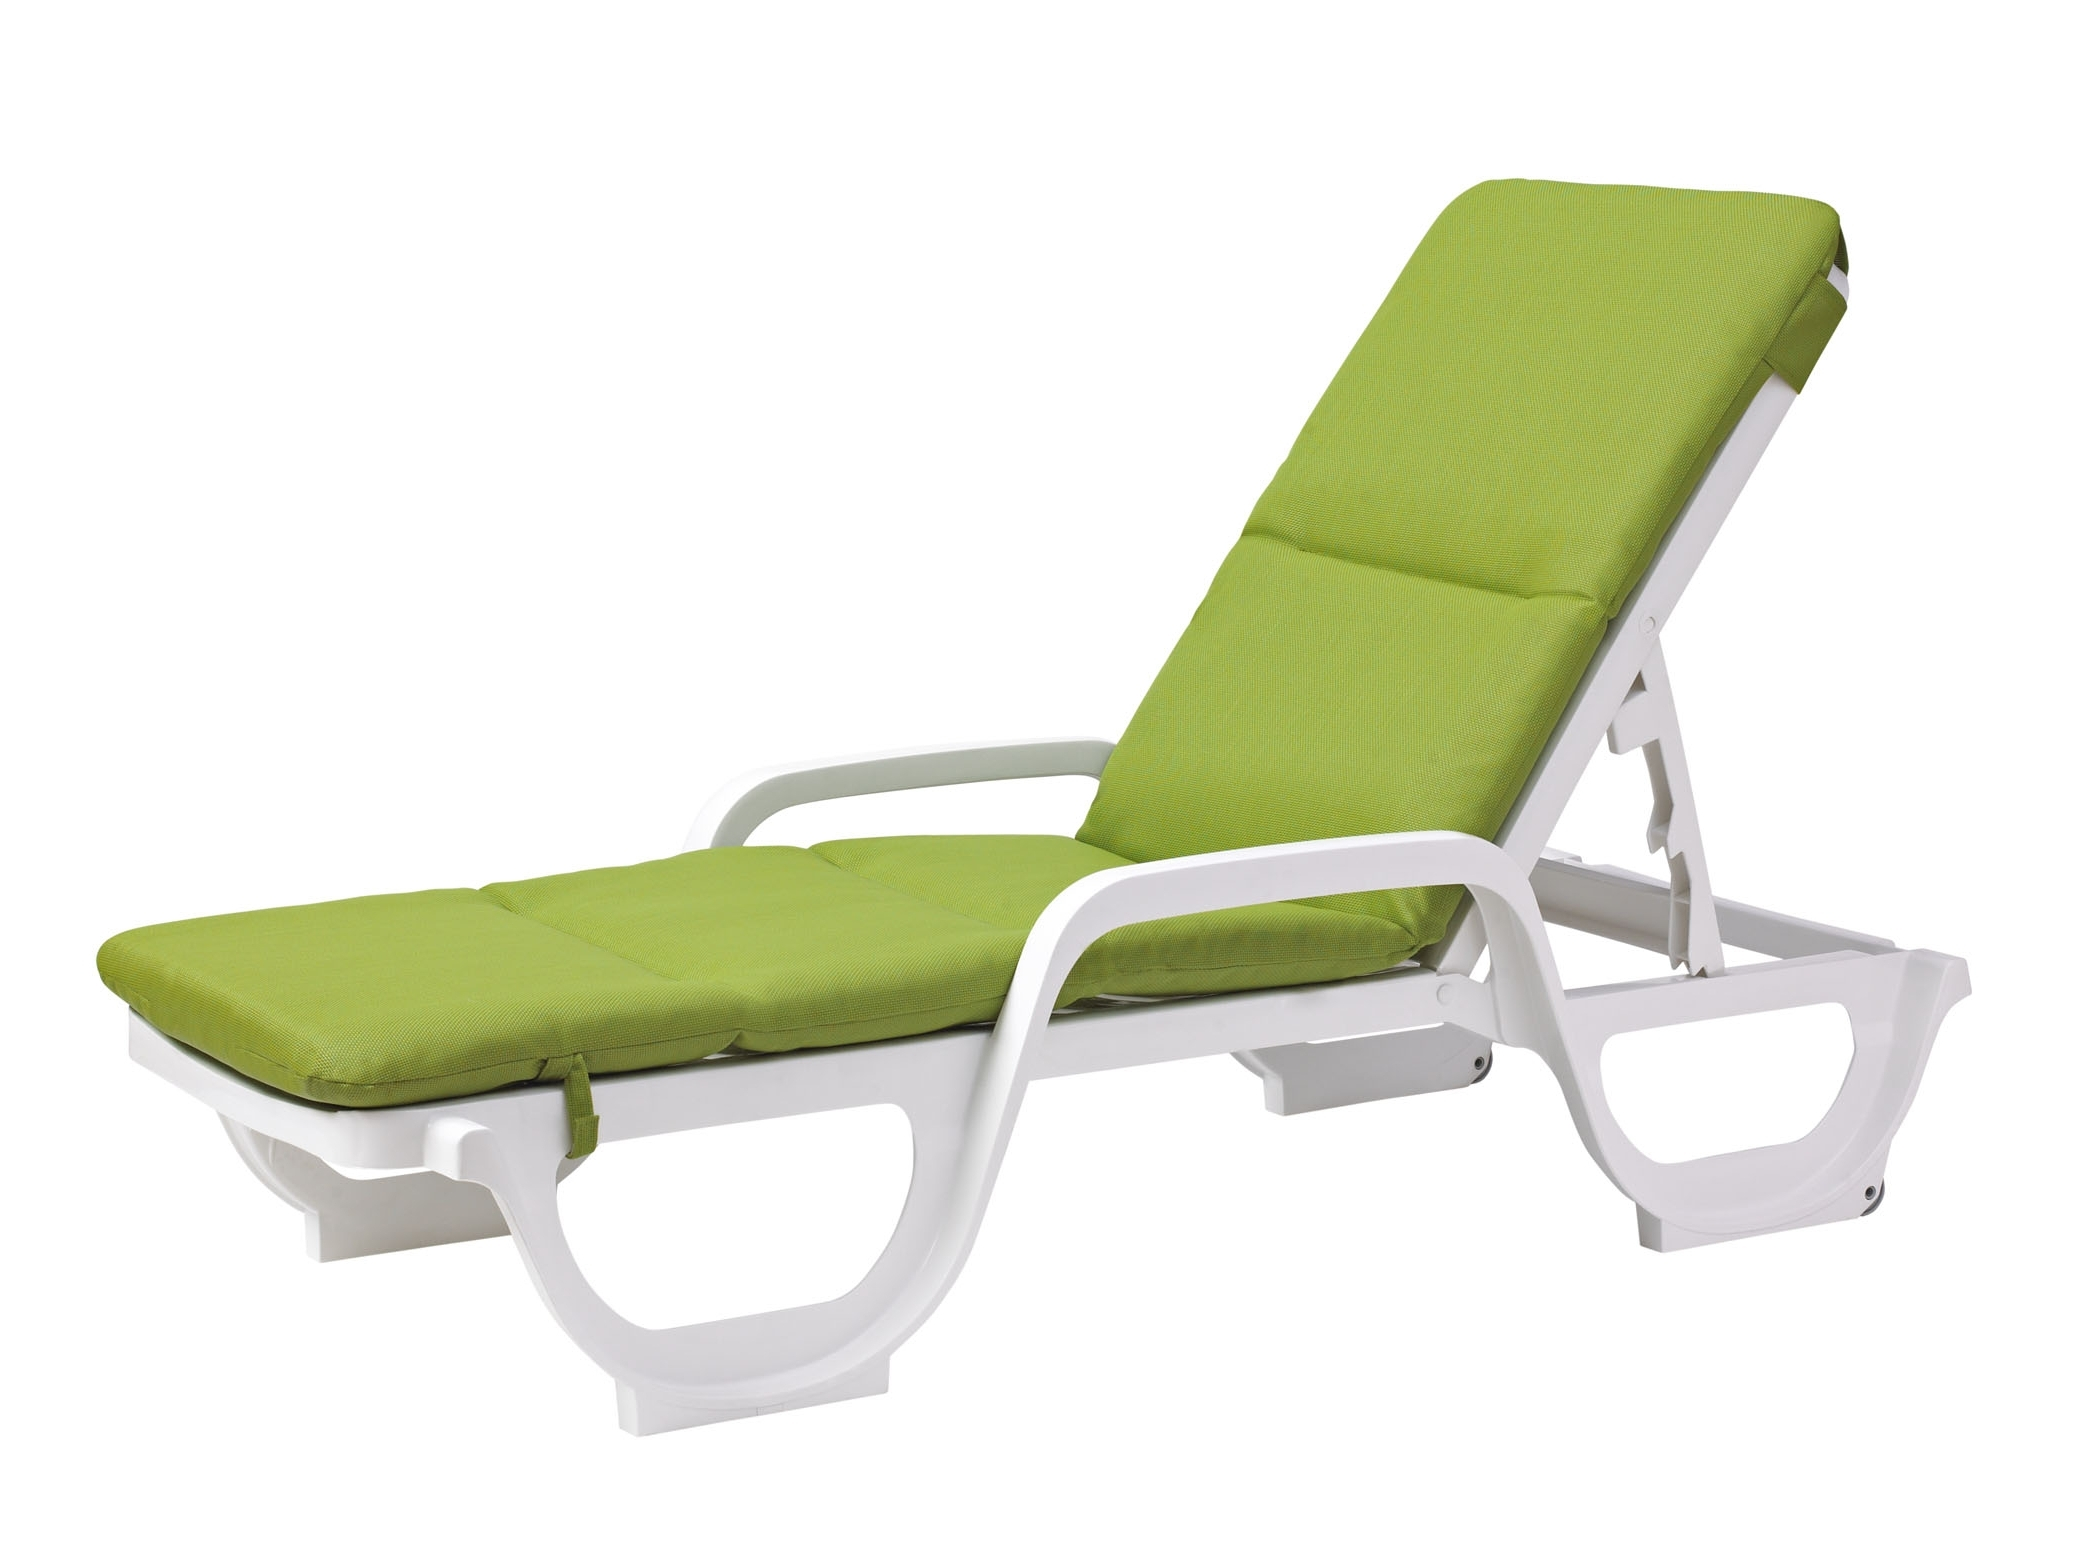 Well Known Green Pool Lounge Chairs • Lounge Chairs Ideas With Green Chaise Lounge Chairs (View 15 of 15)